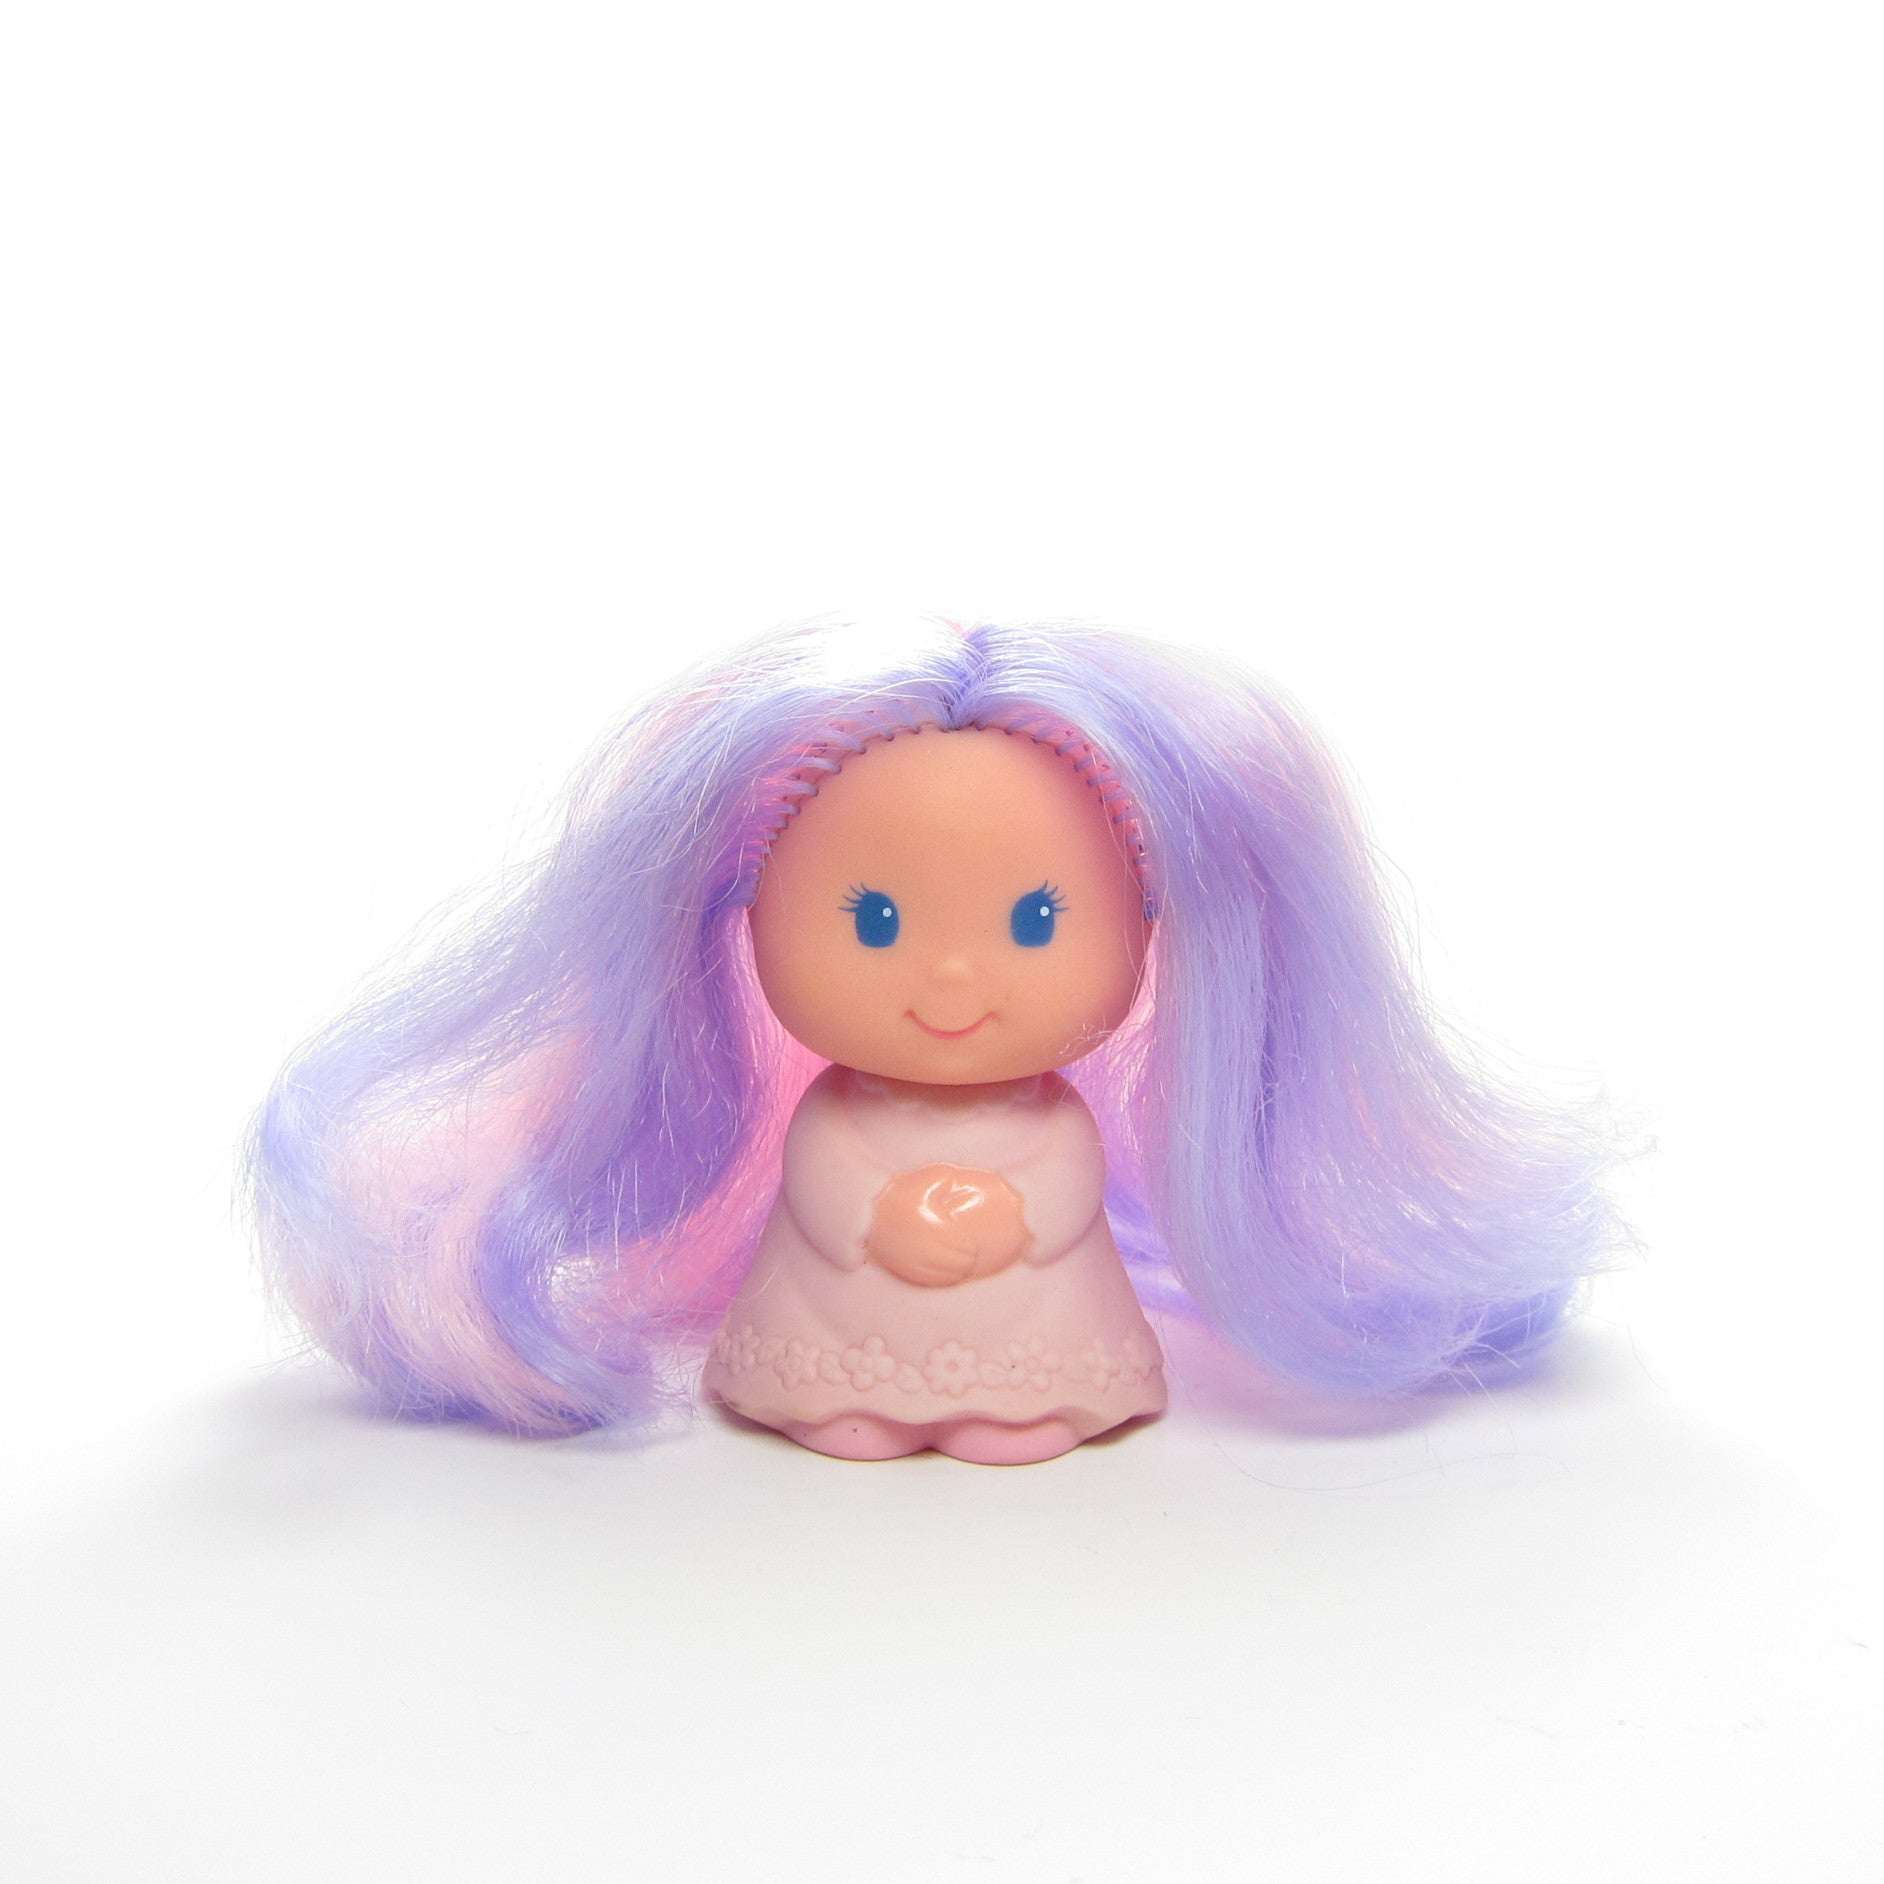 Pearlypeek Lady LovelyLocks Hide N Peek doll